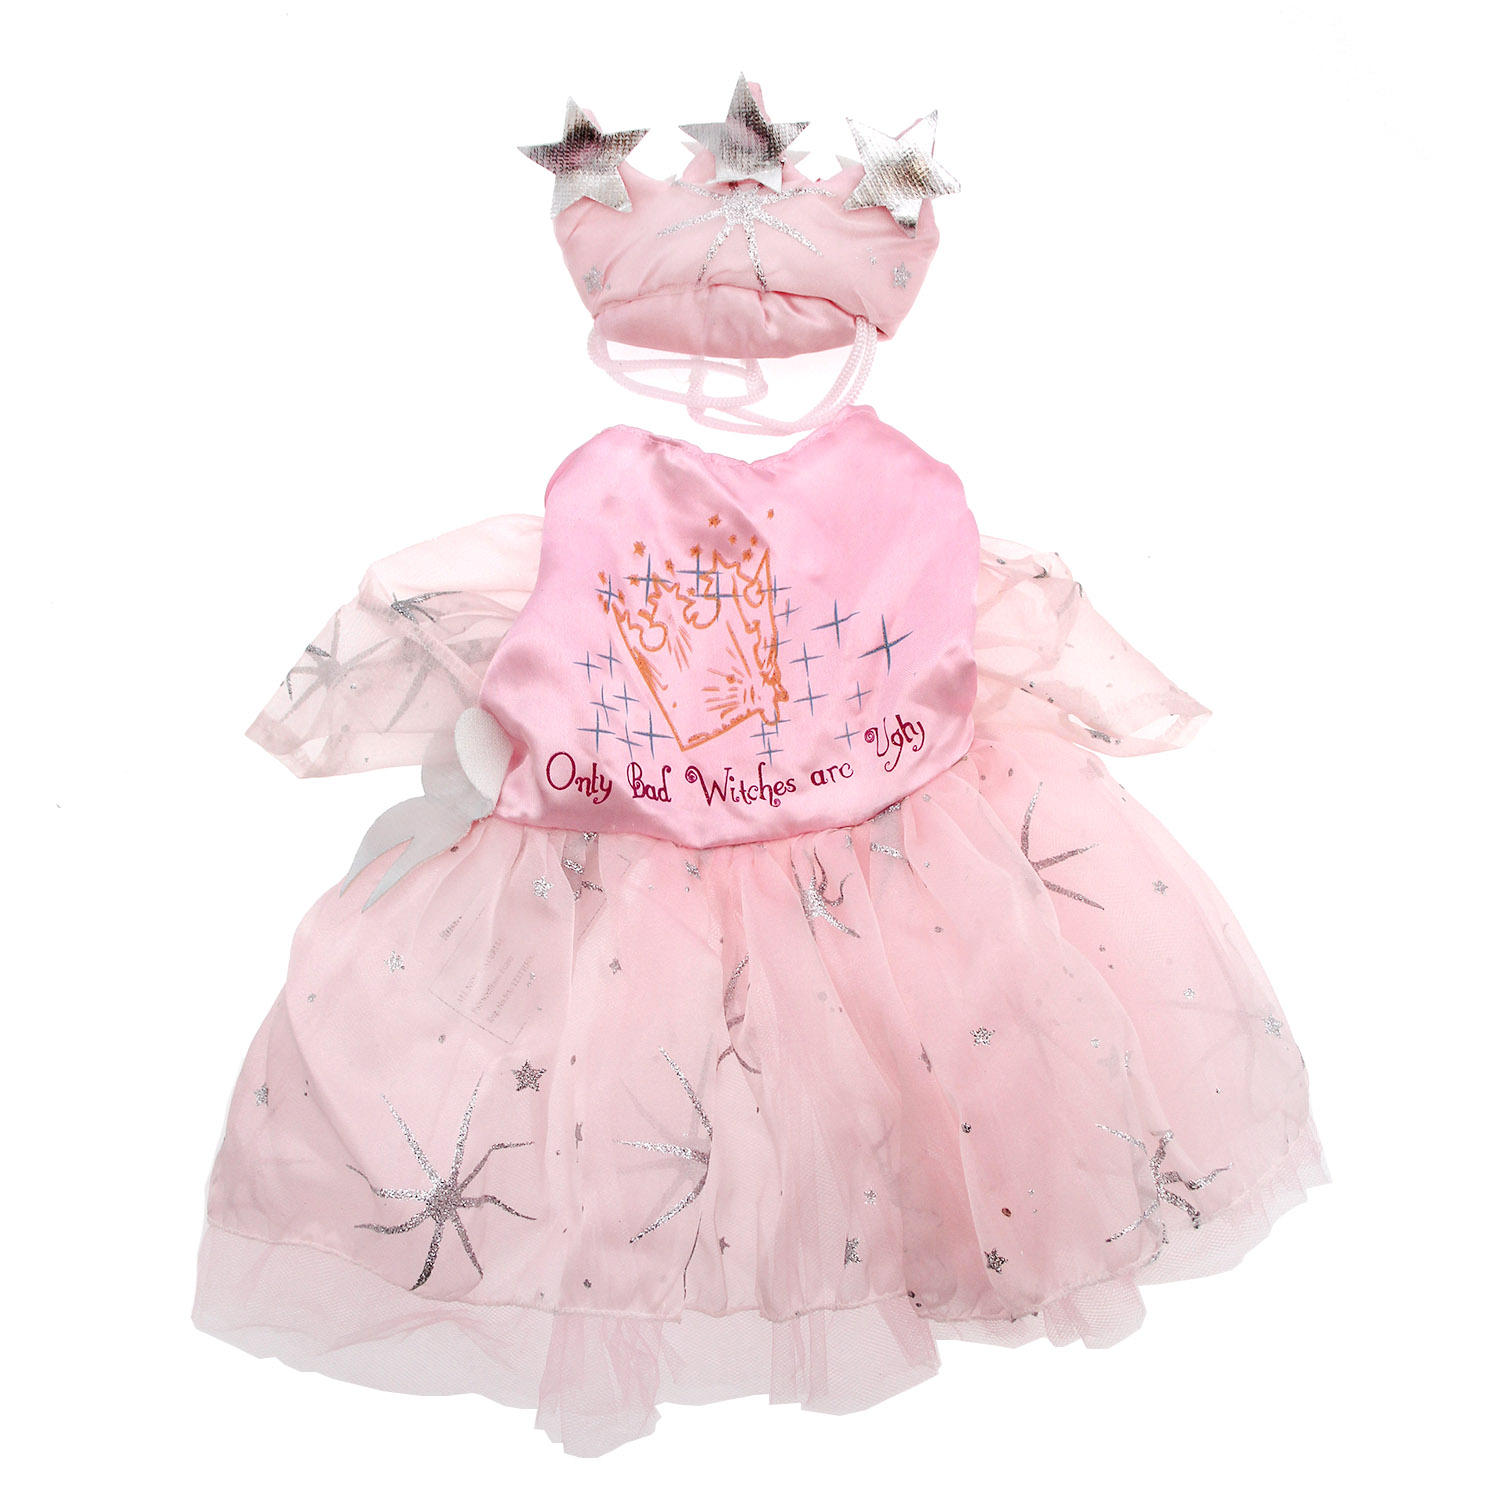 Glinda the Good Witch Dog Costume with Same Day Shipping | BaxterBoo